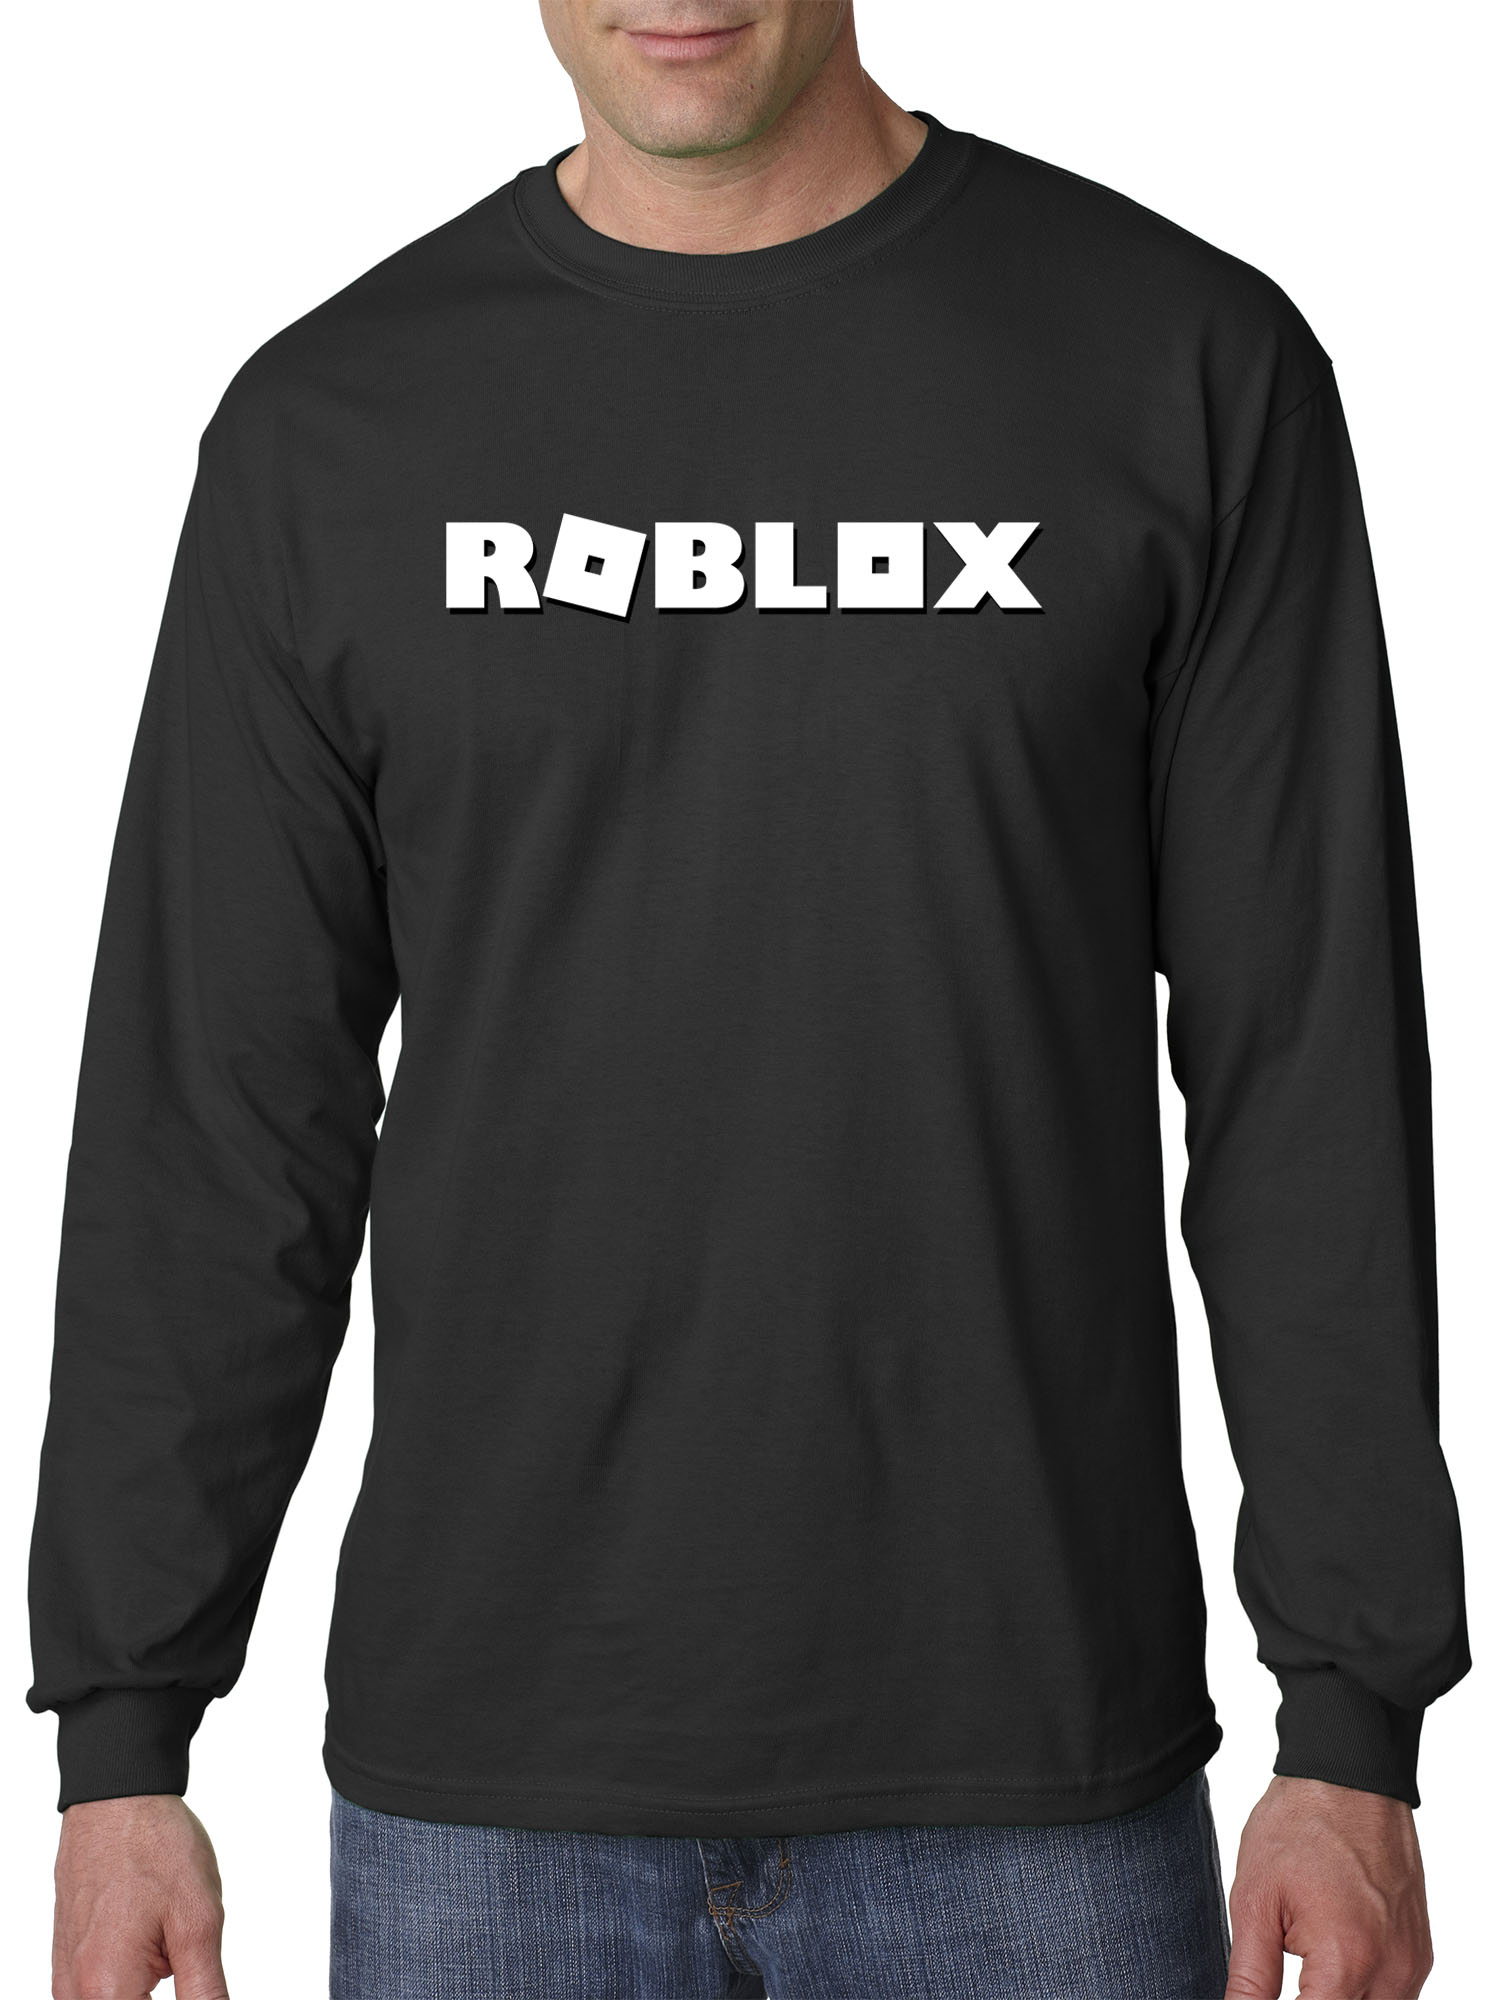 New Way New Way 923 Unisex Long Sleeve T Shirt Roblox Logo